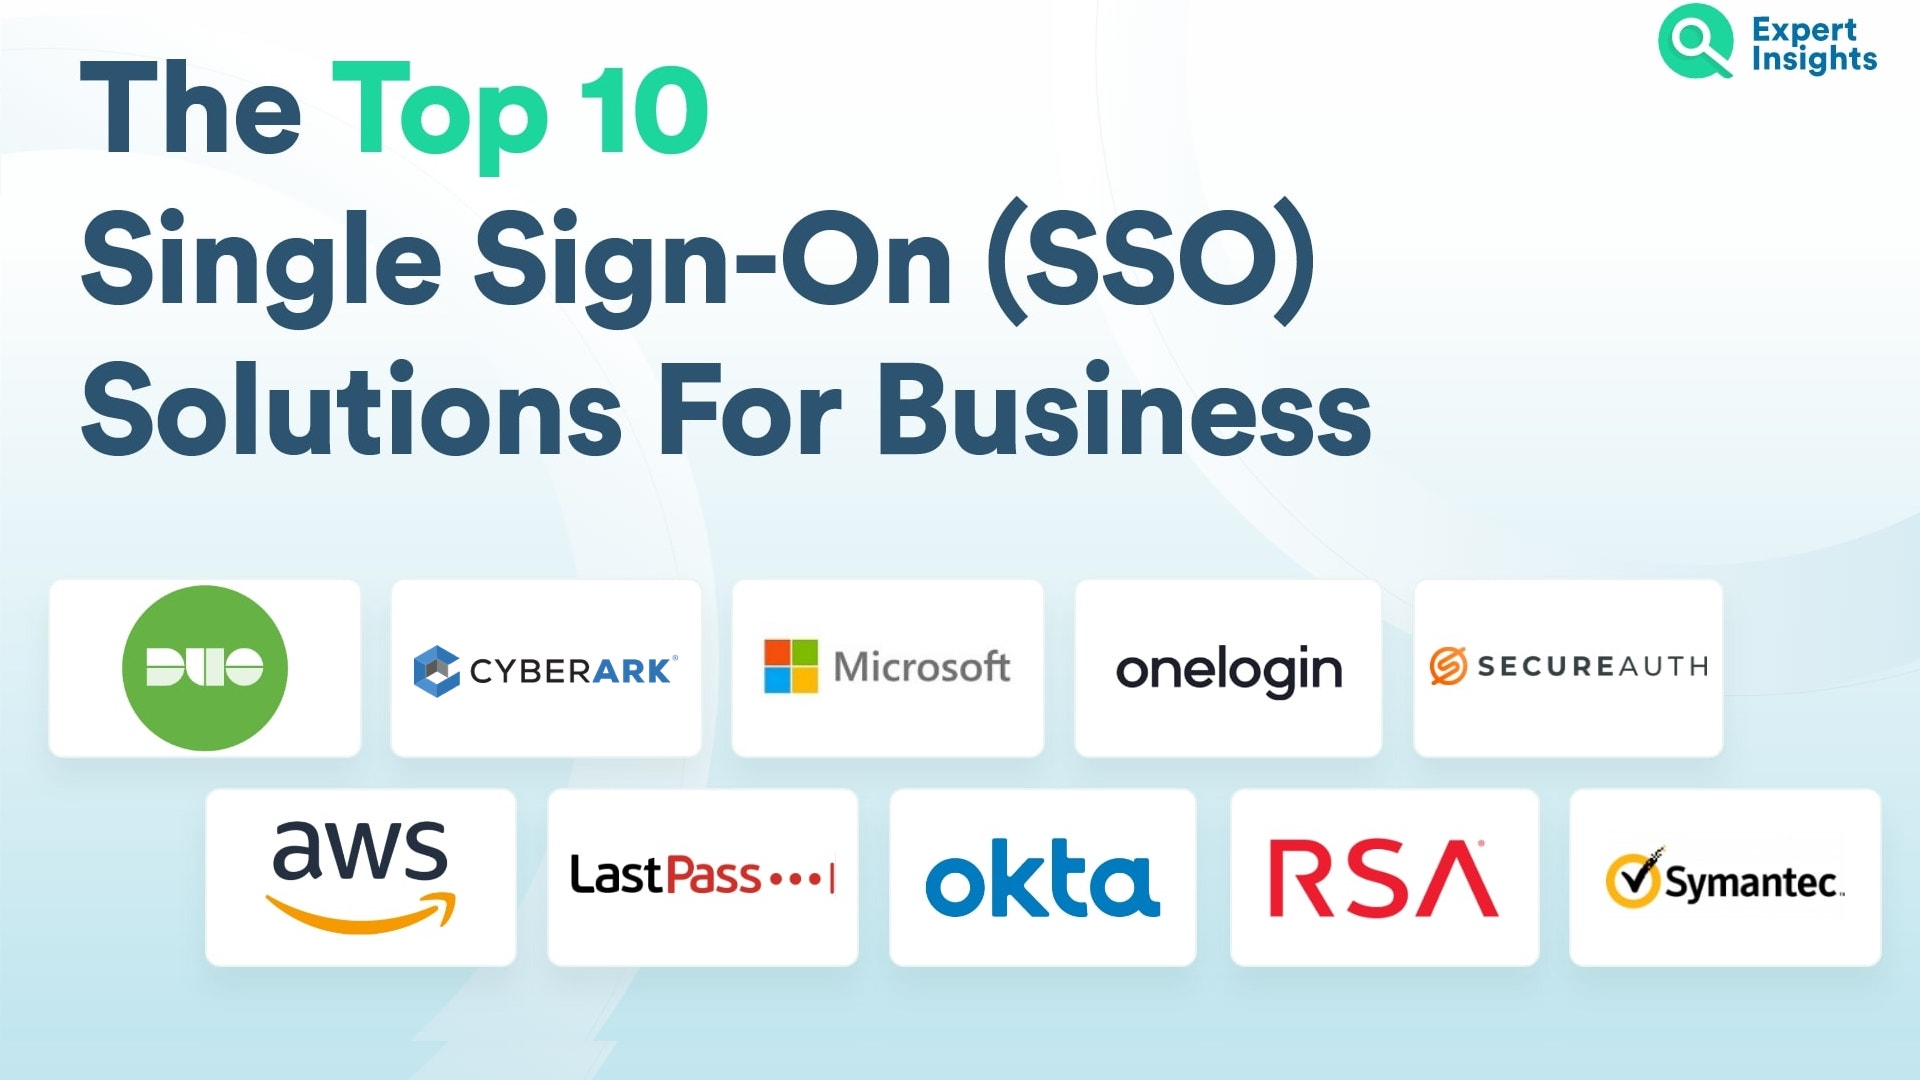 Top 10 Single Sign-On Solutions For Business - Expert Insights